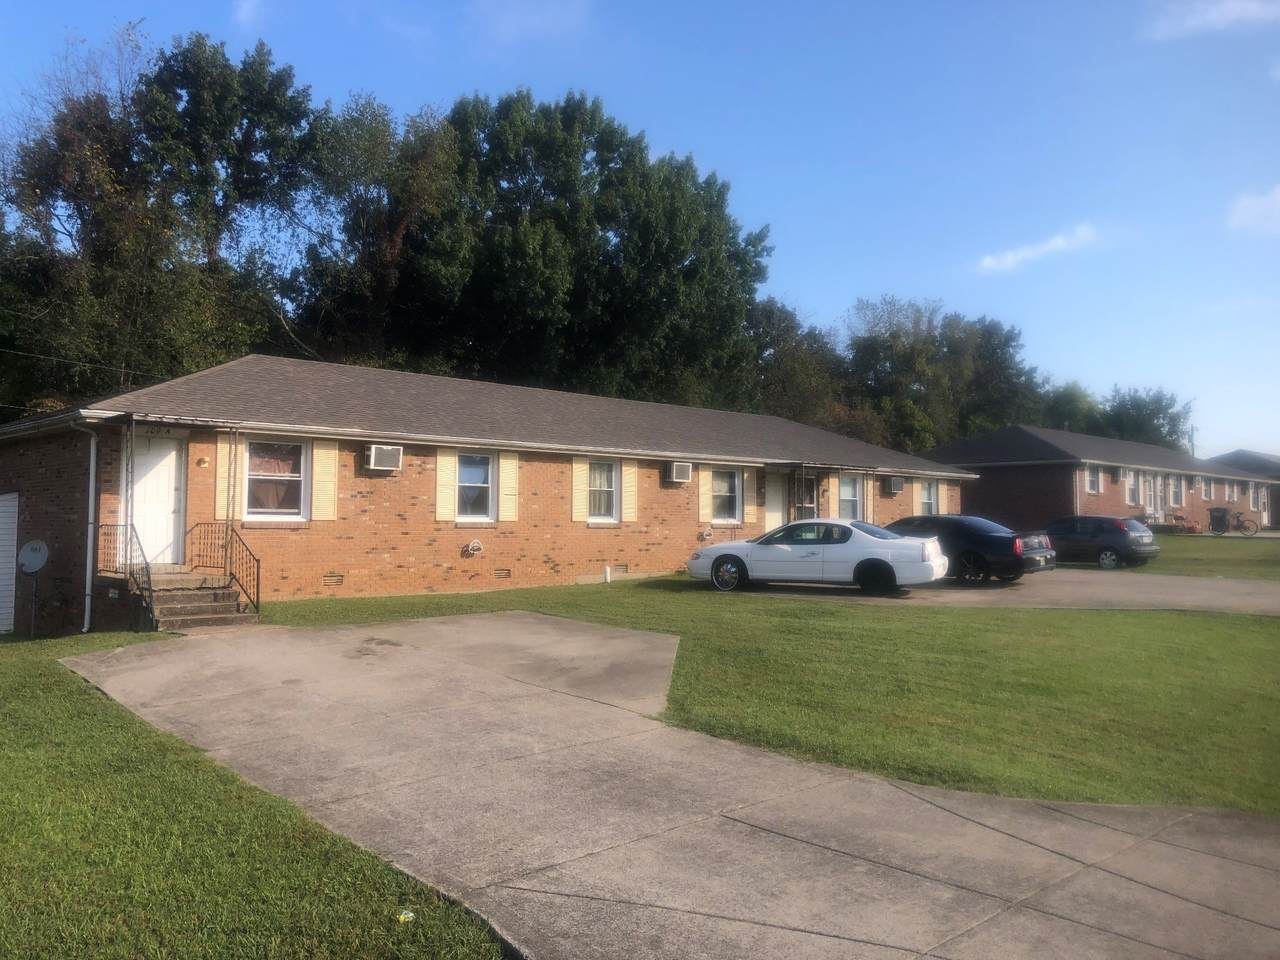 109 Tandy Dr - Photo 1